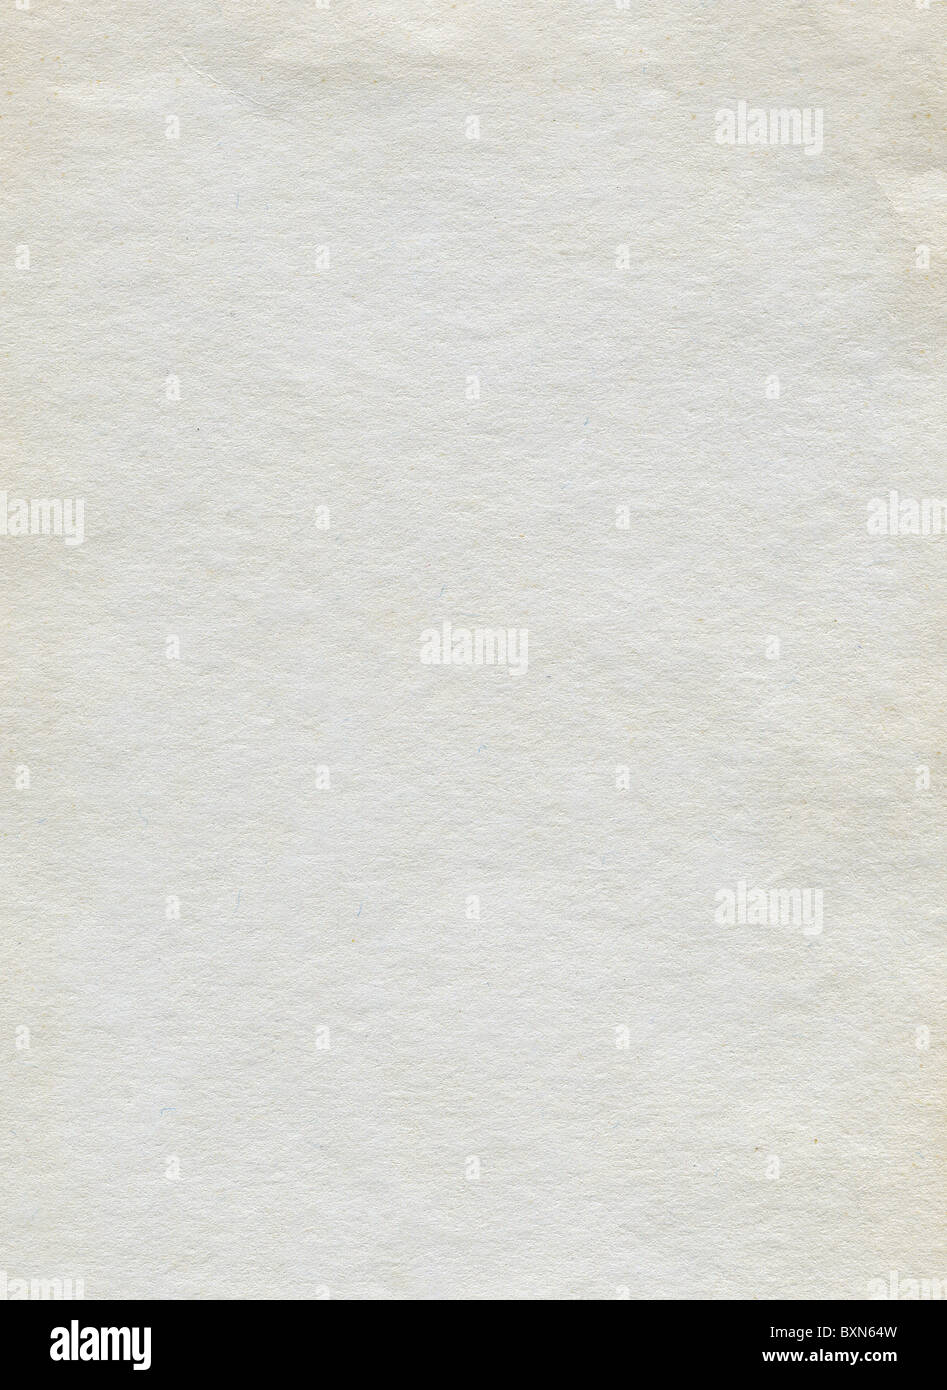 Textured white grainy recycled paper with natural fiber parts - Stock Image